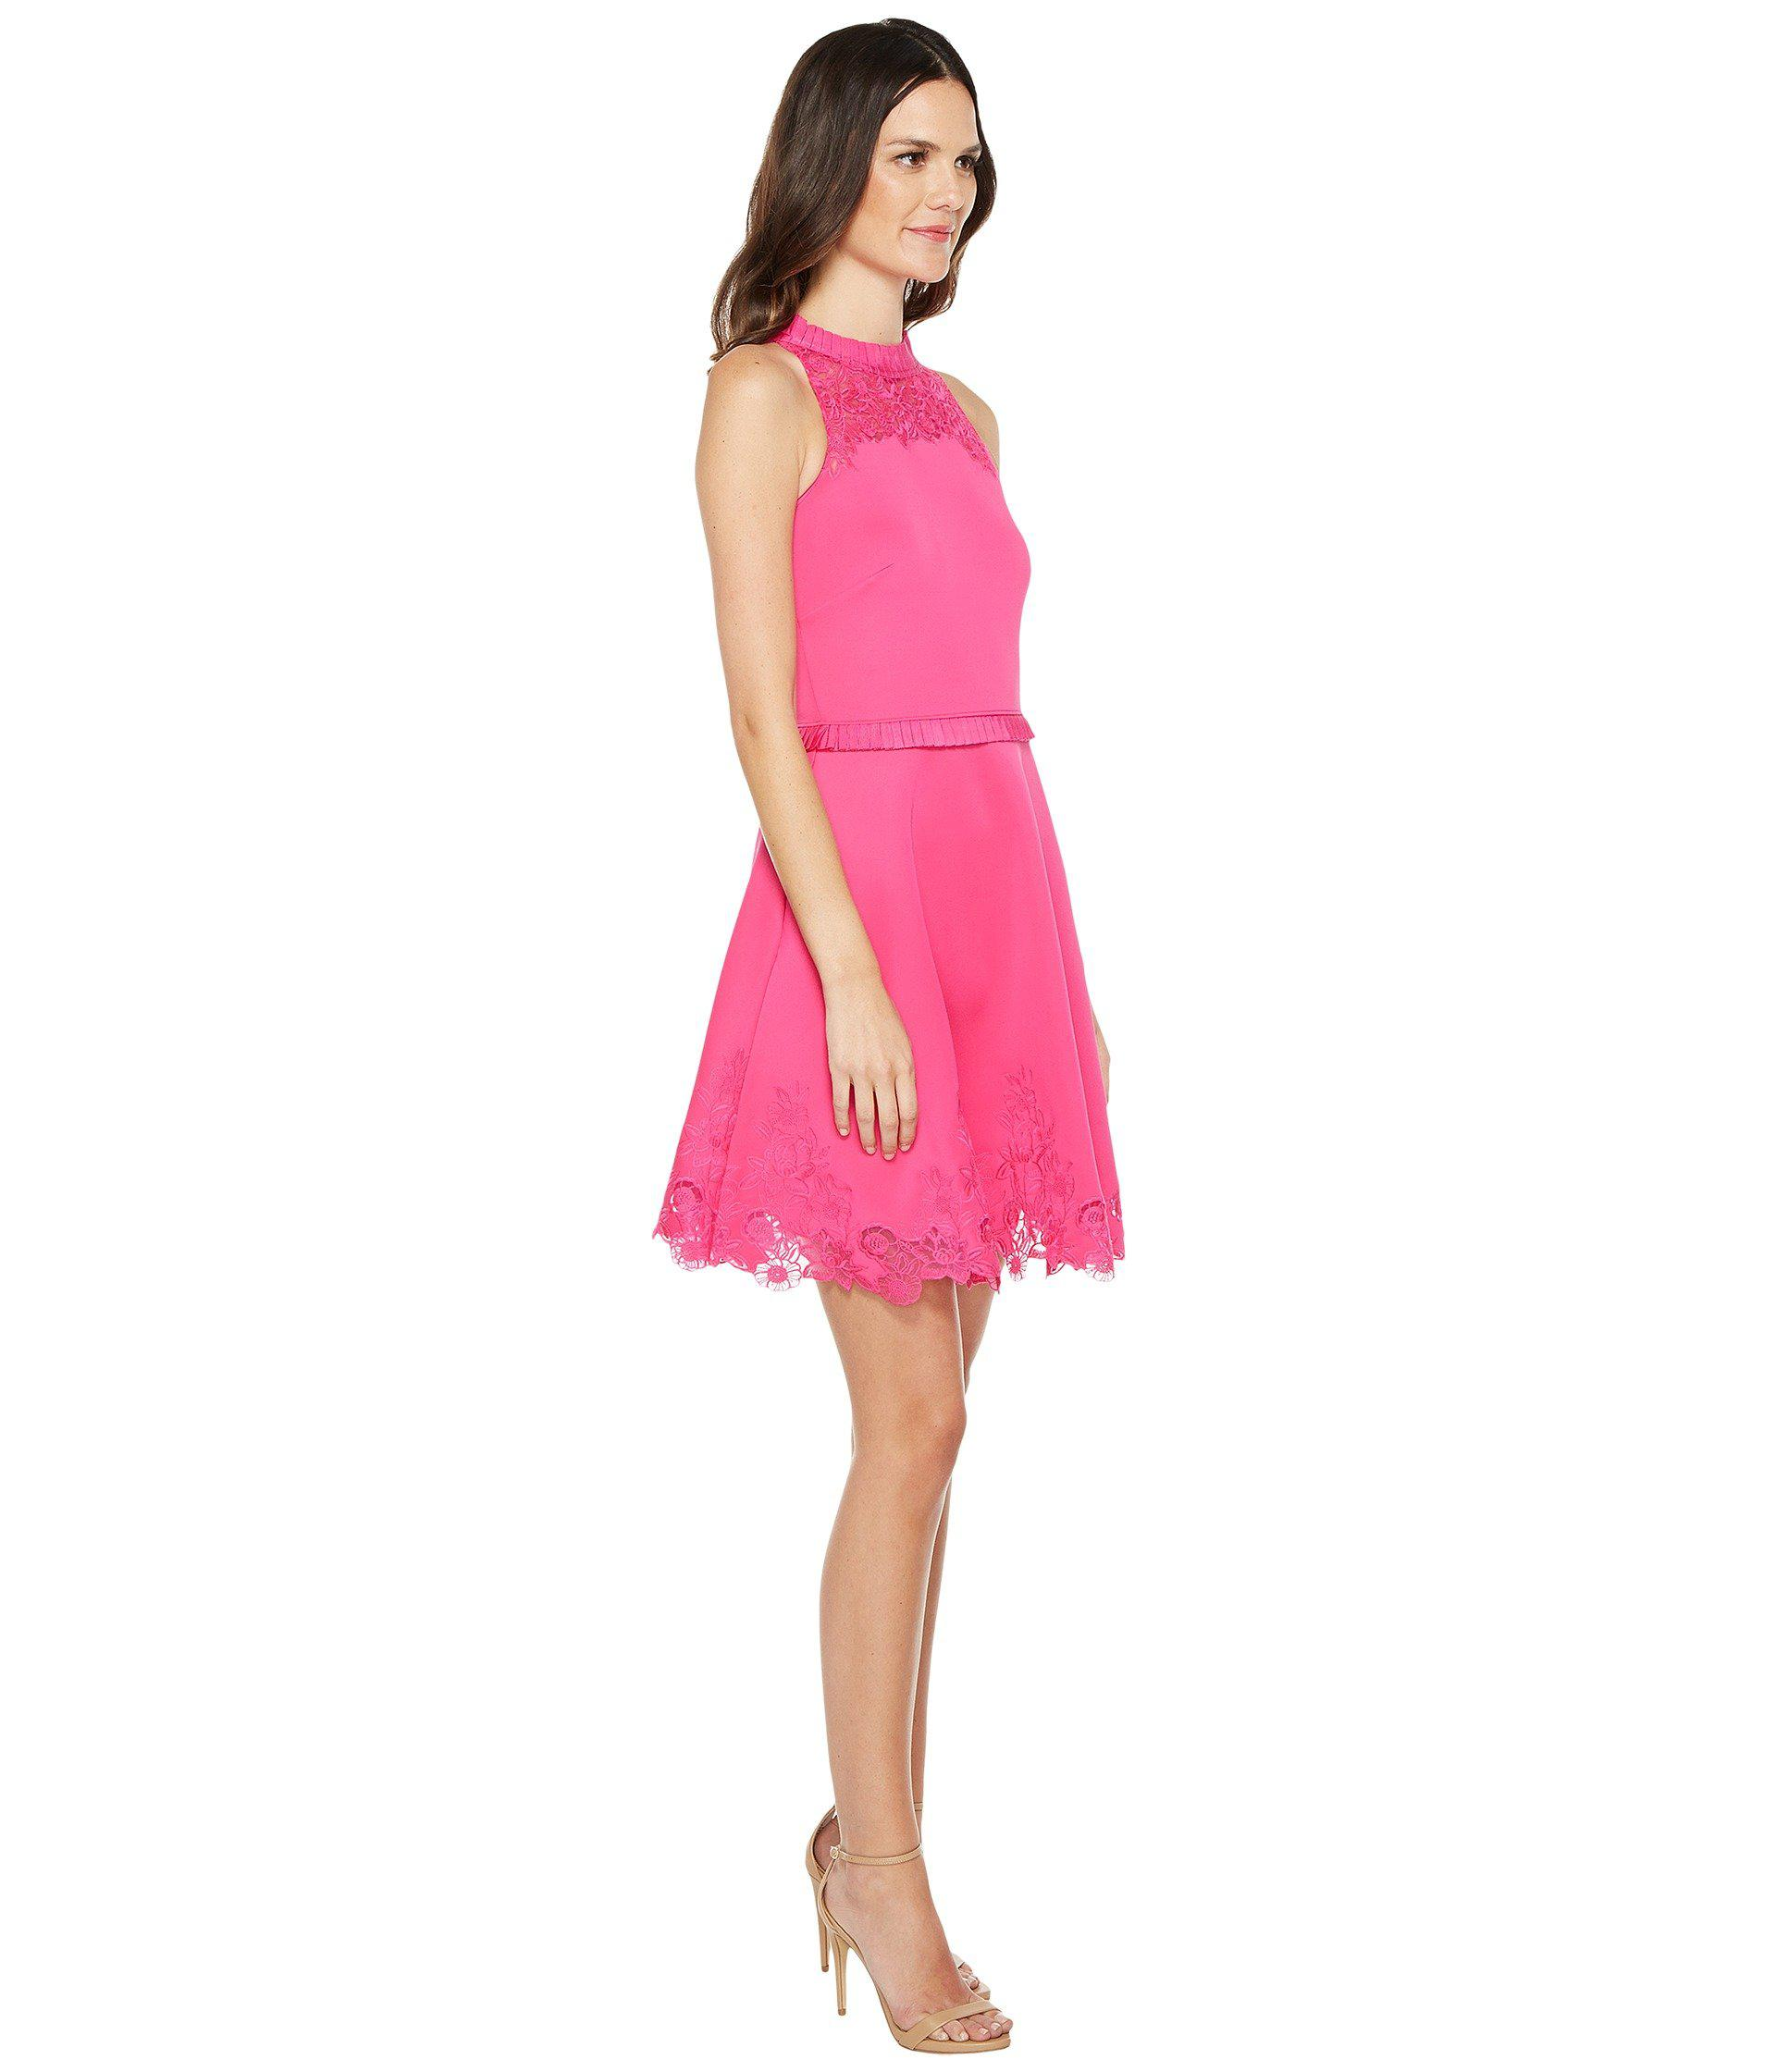 8323b1a2242230 ... Lyst - Ted Baker Zaffron Embroidered Skater Dress in Pink exquisite  design 398a2 56a49 ...